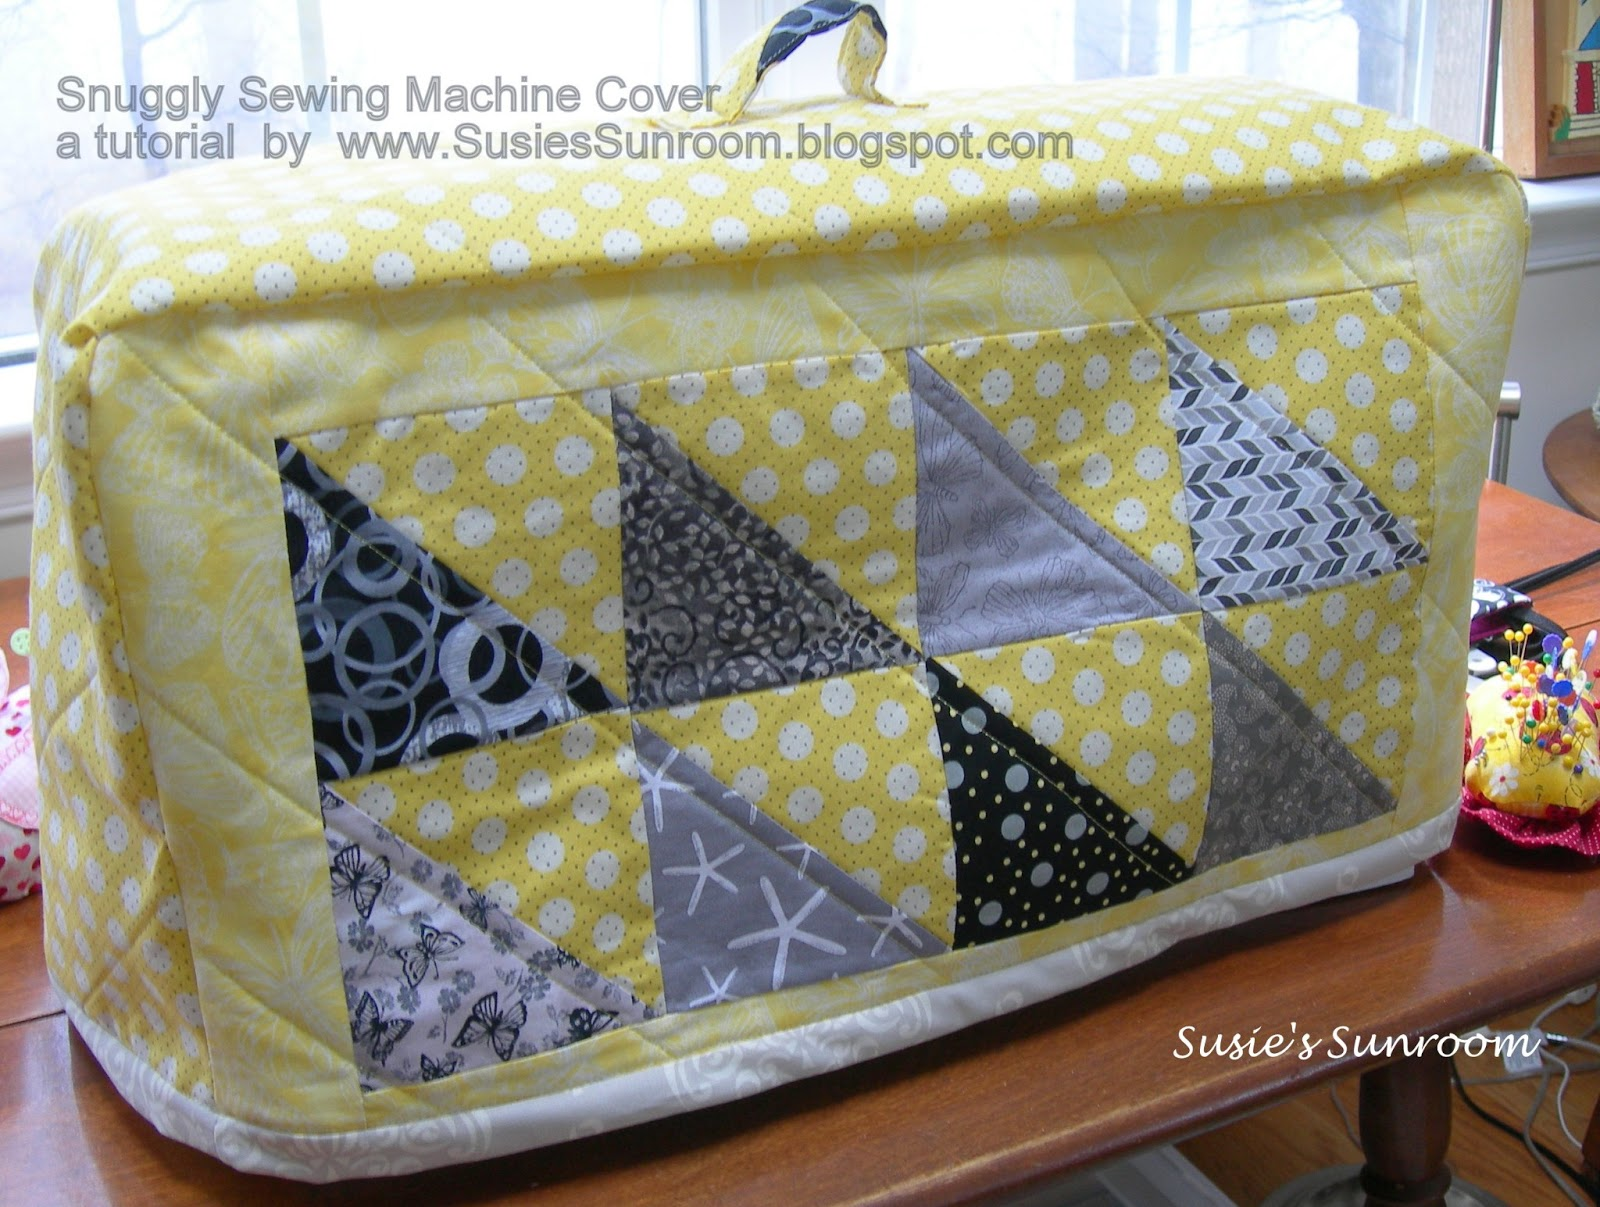 how to make a sewing machine cover with handle